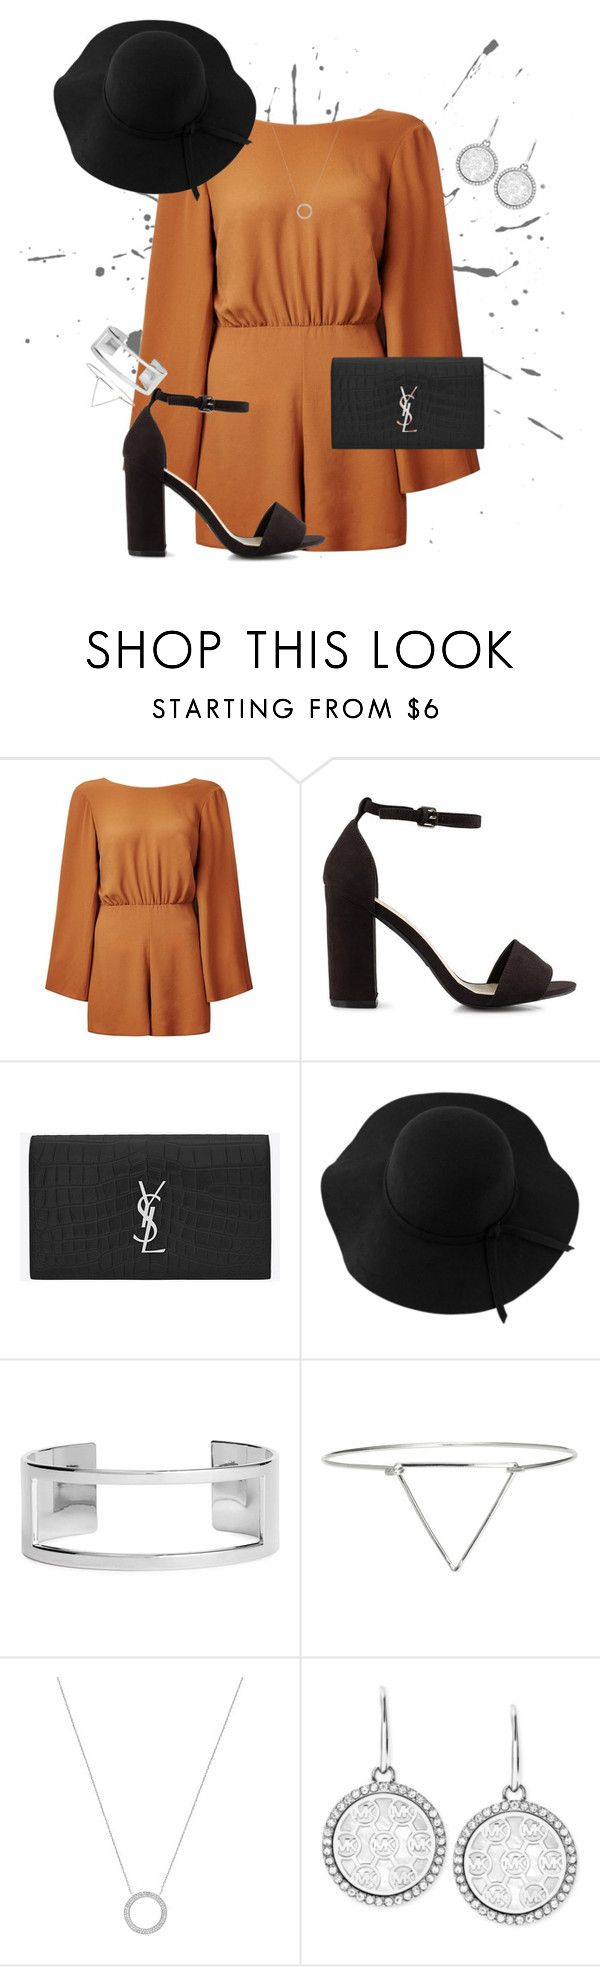 SB-2016 by louisesandstroms on Polyvore featuring New Look, Nly Shoes, Yves Saint Laurent, Michael Kors, H&M and Sans Souci